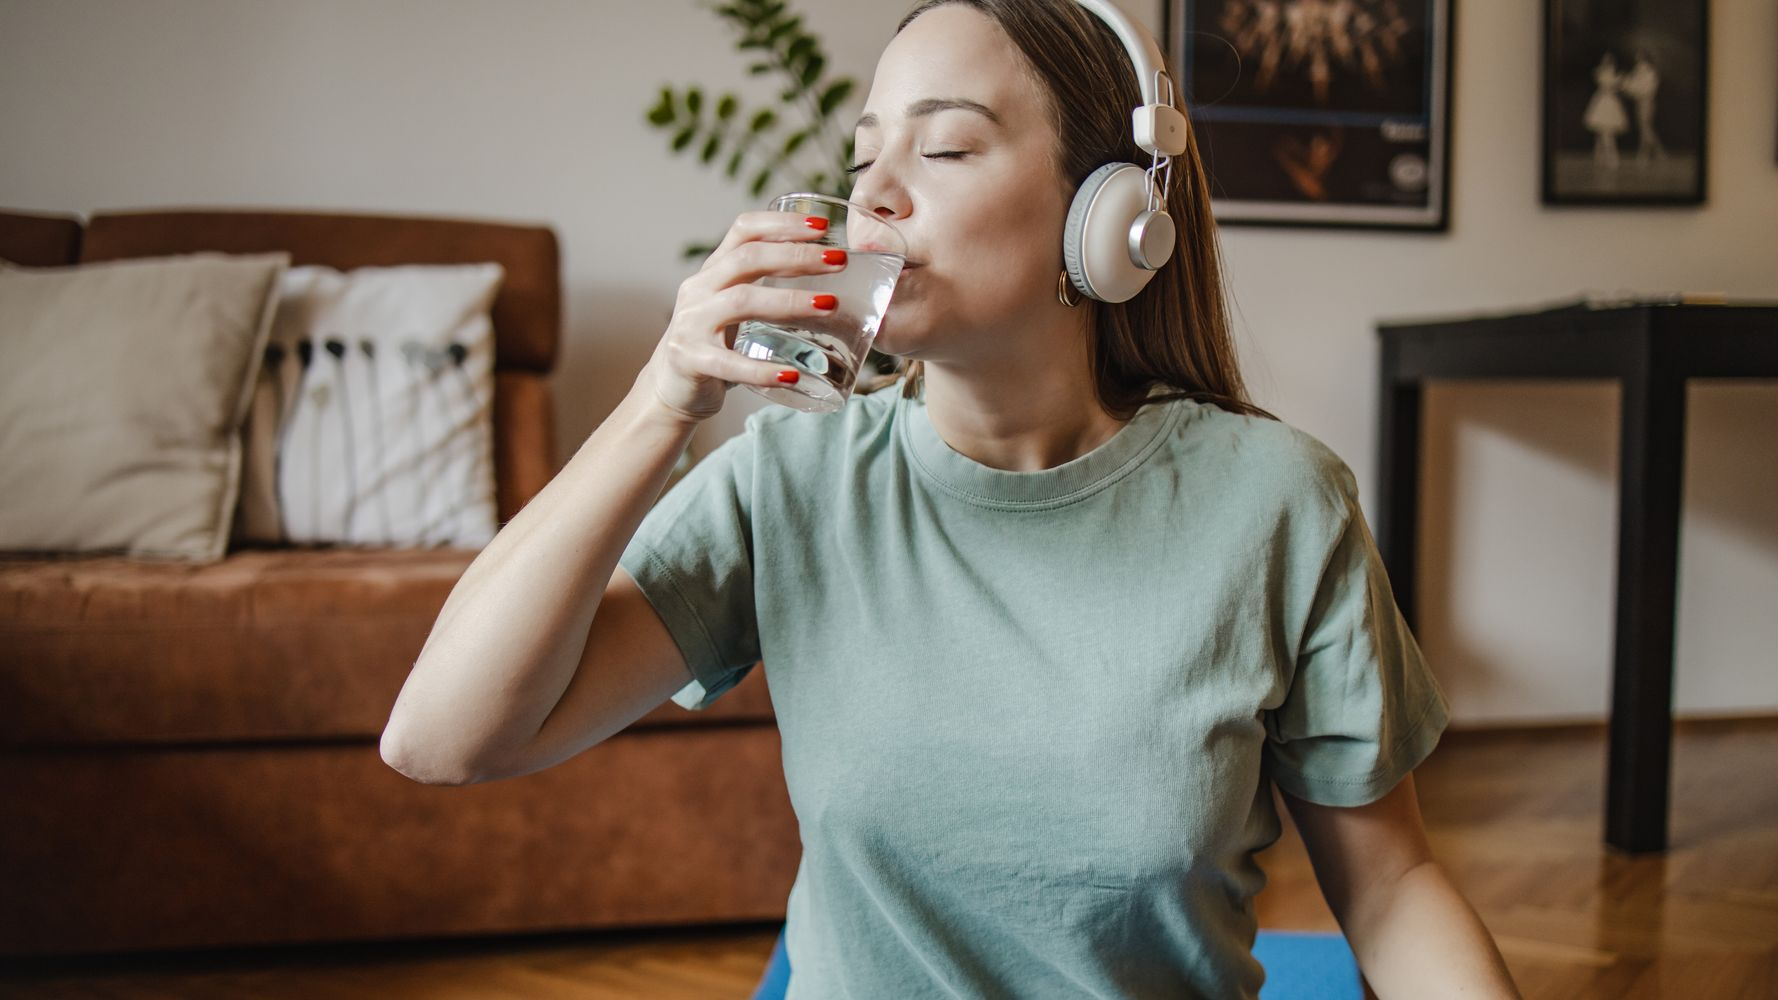 There's A Technique To Drinking Water That'll Keep You Hydrated